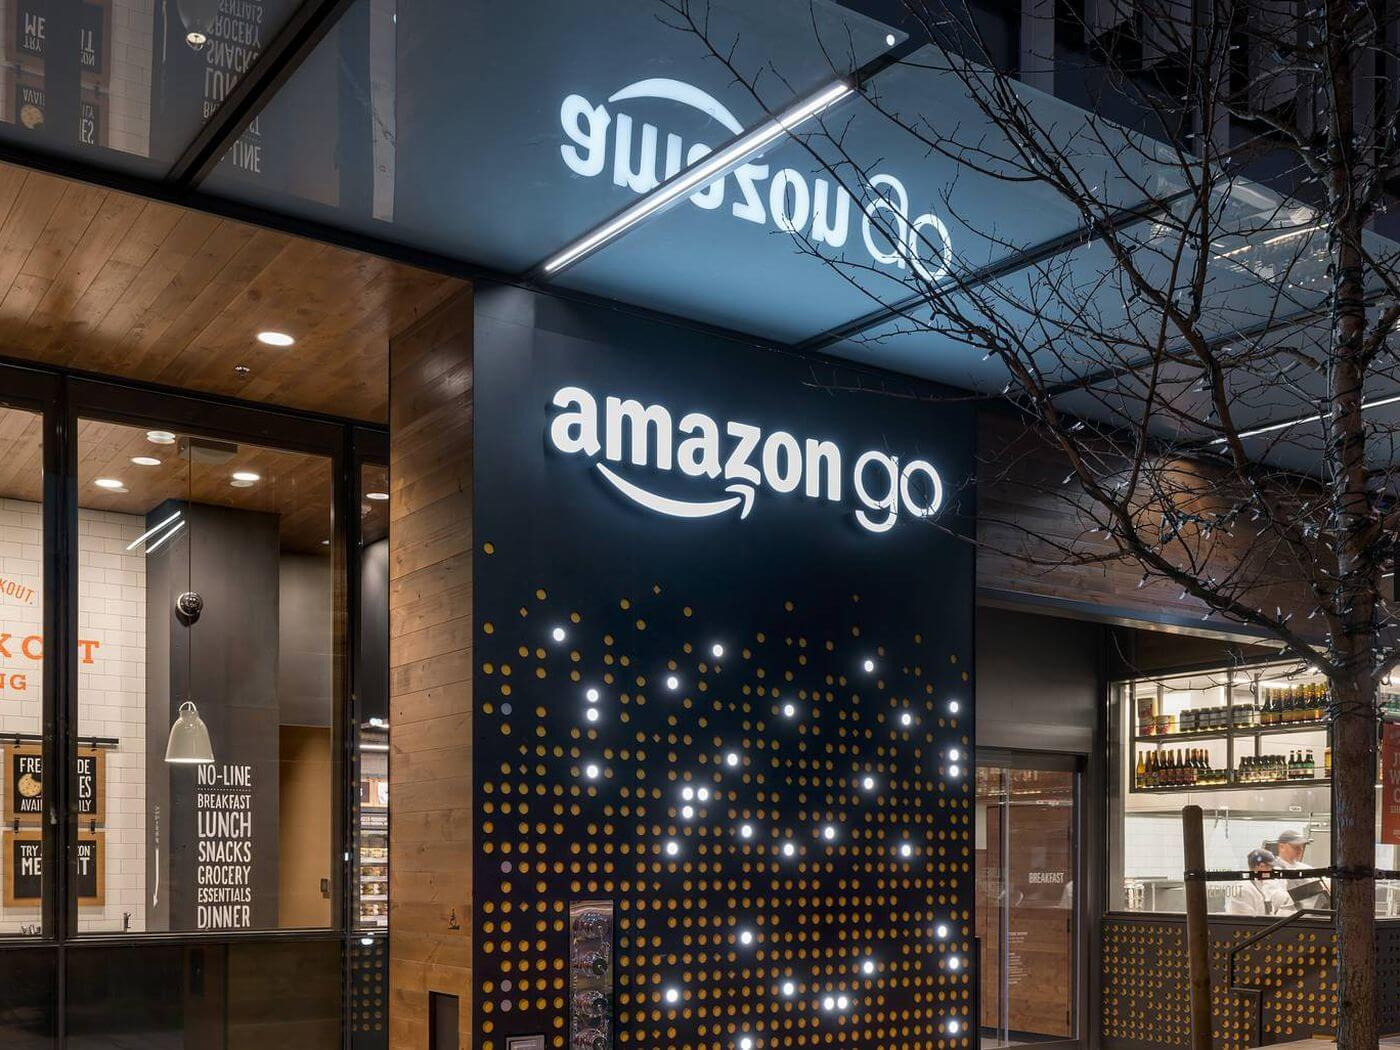 Amazon wants 3000 Amazon Go stores by 2021